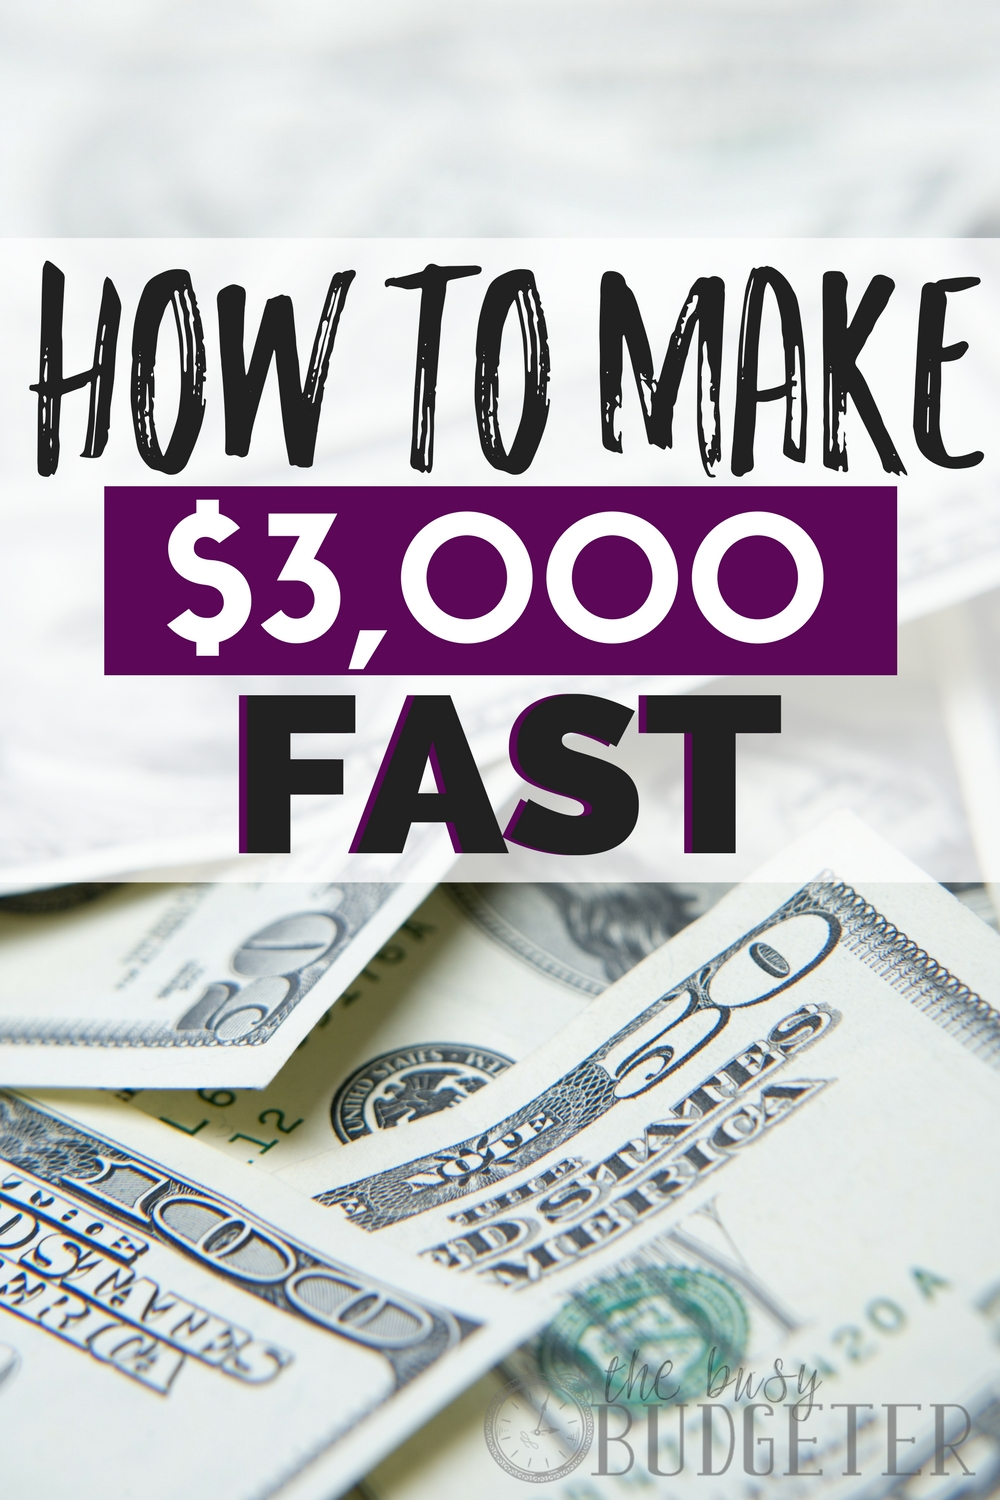 I definitely never thought there was a way to make $3,000 fast, and I was skeptical clicking on this article but I'm so glad I did! I never even thought of these easy ways to make money quickly and I'm so excited to try them out! Great read!